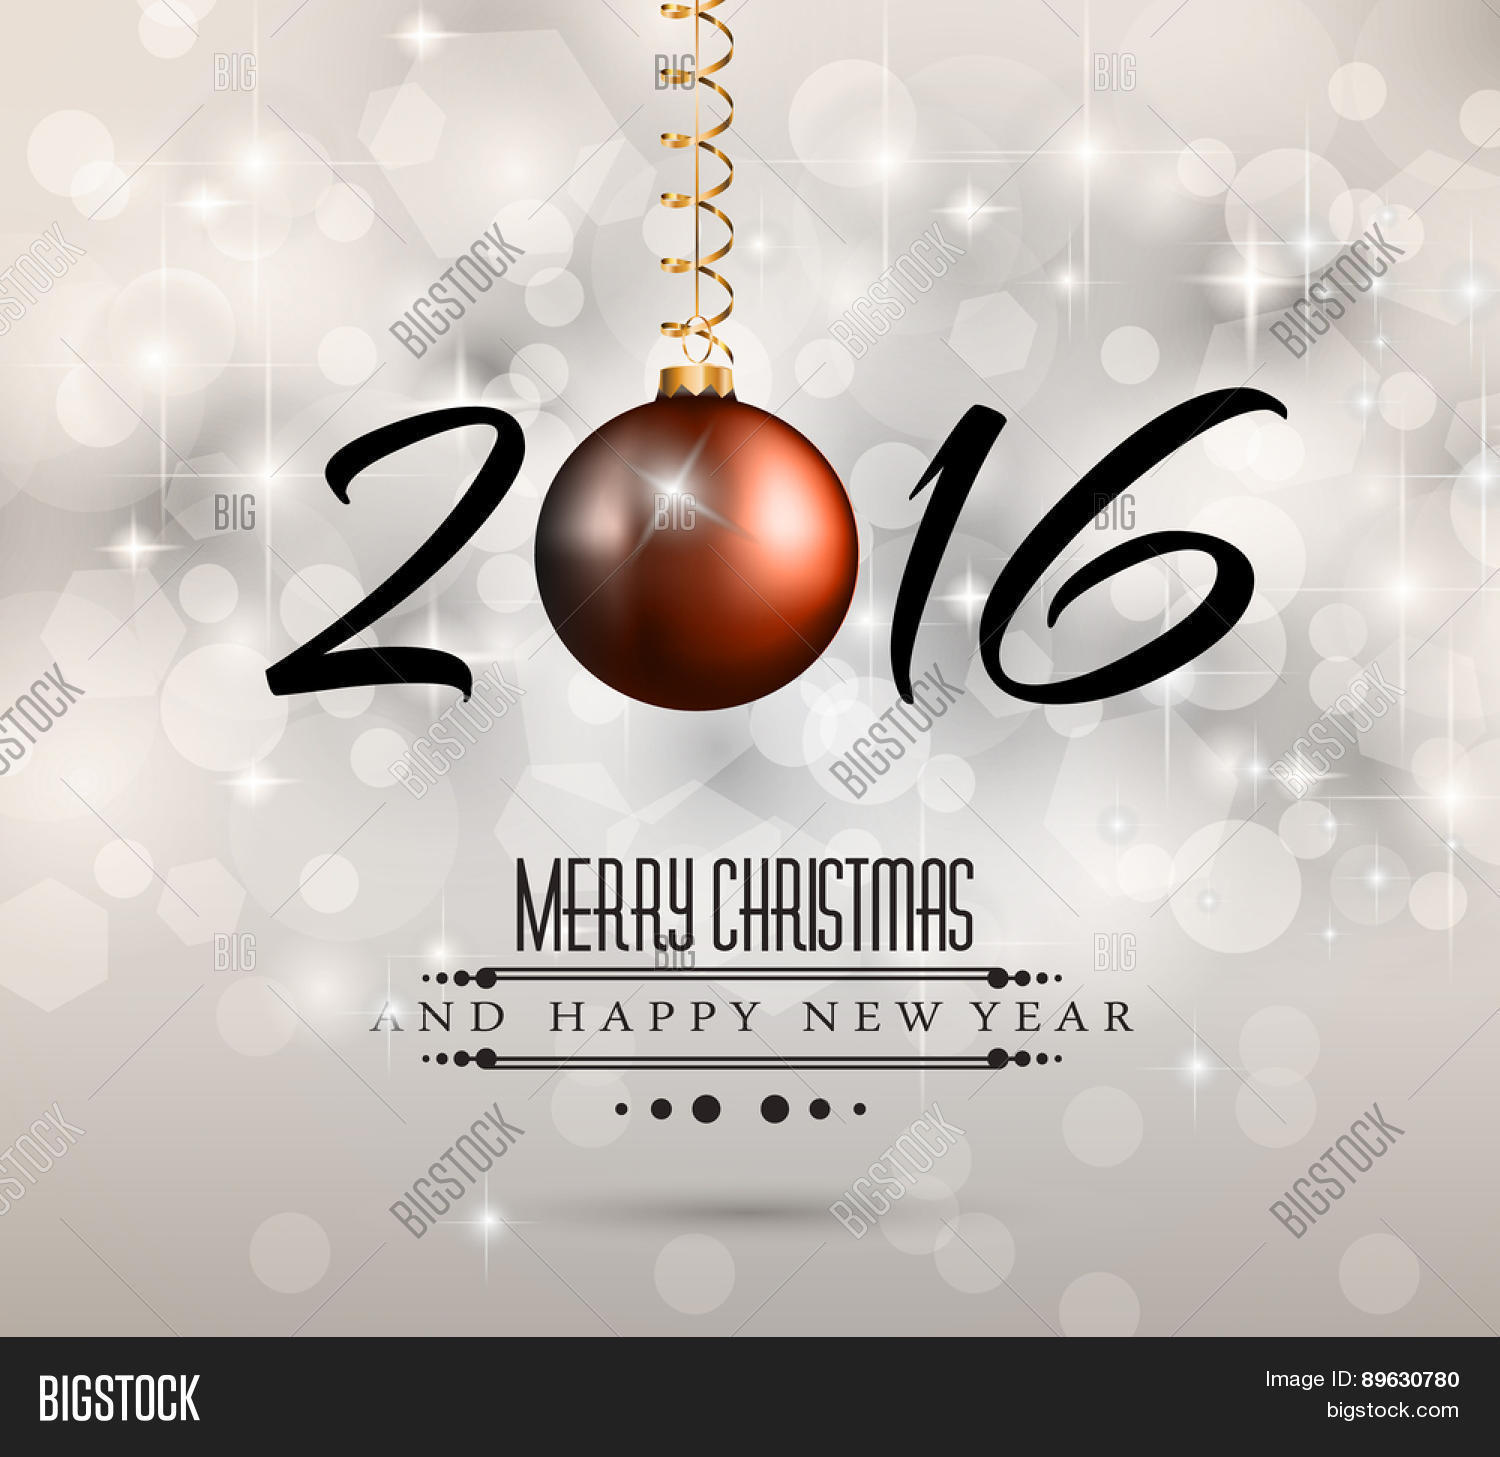 2016 New Year Happy Vector Photo Free Trial Bigstock